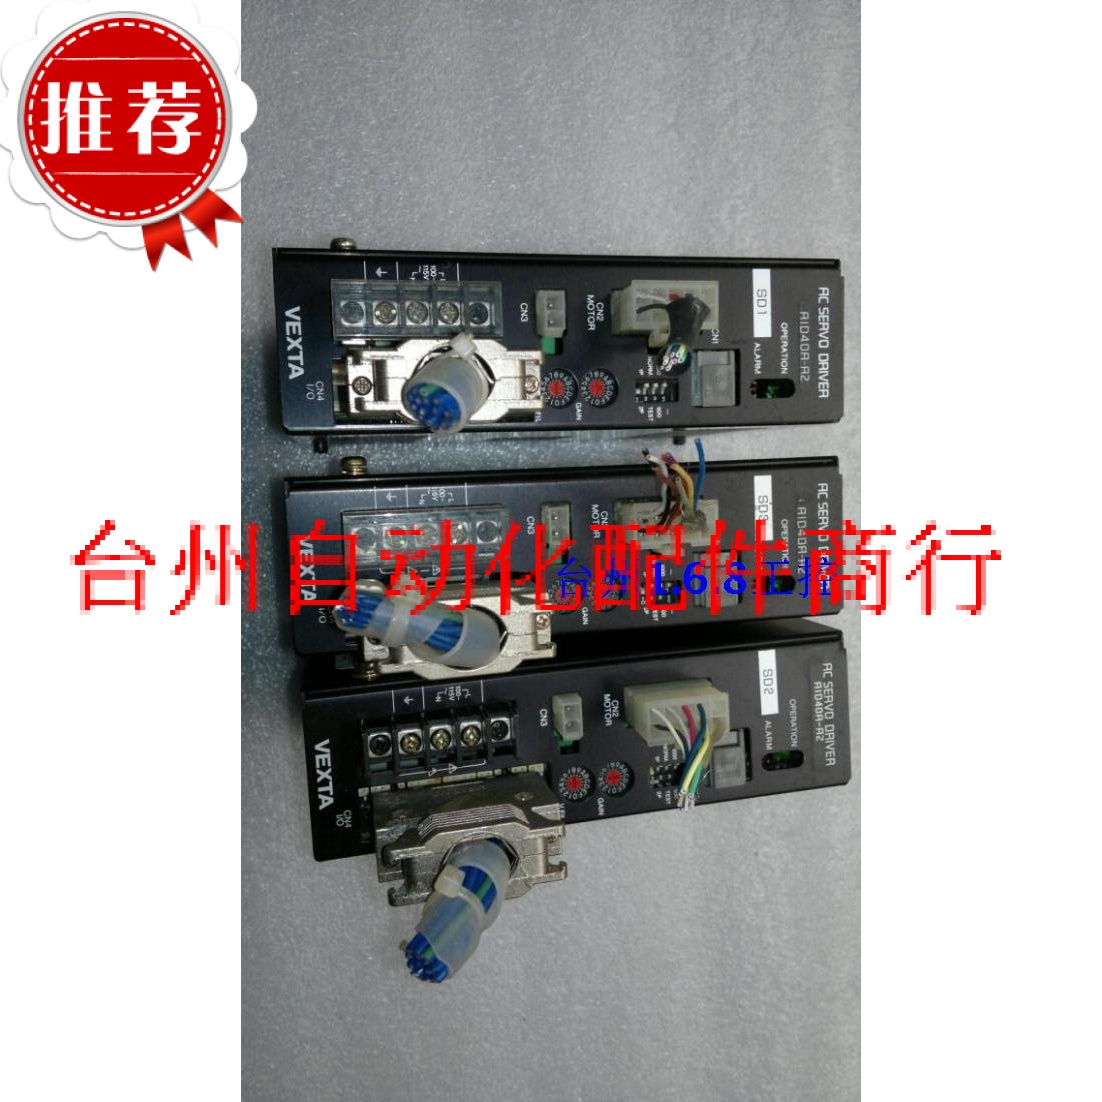 [Secondhand products]Stepper drive AID40A-A2 bargaining Stepper drive AID40A-A2 bargaining